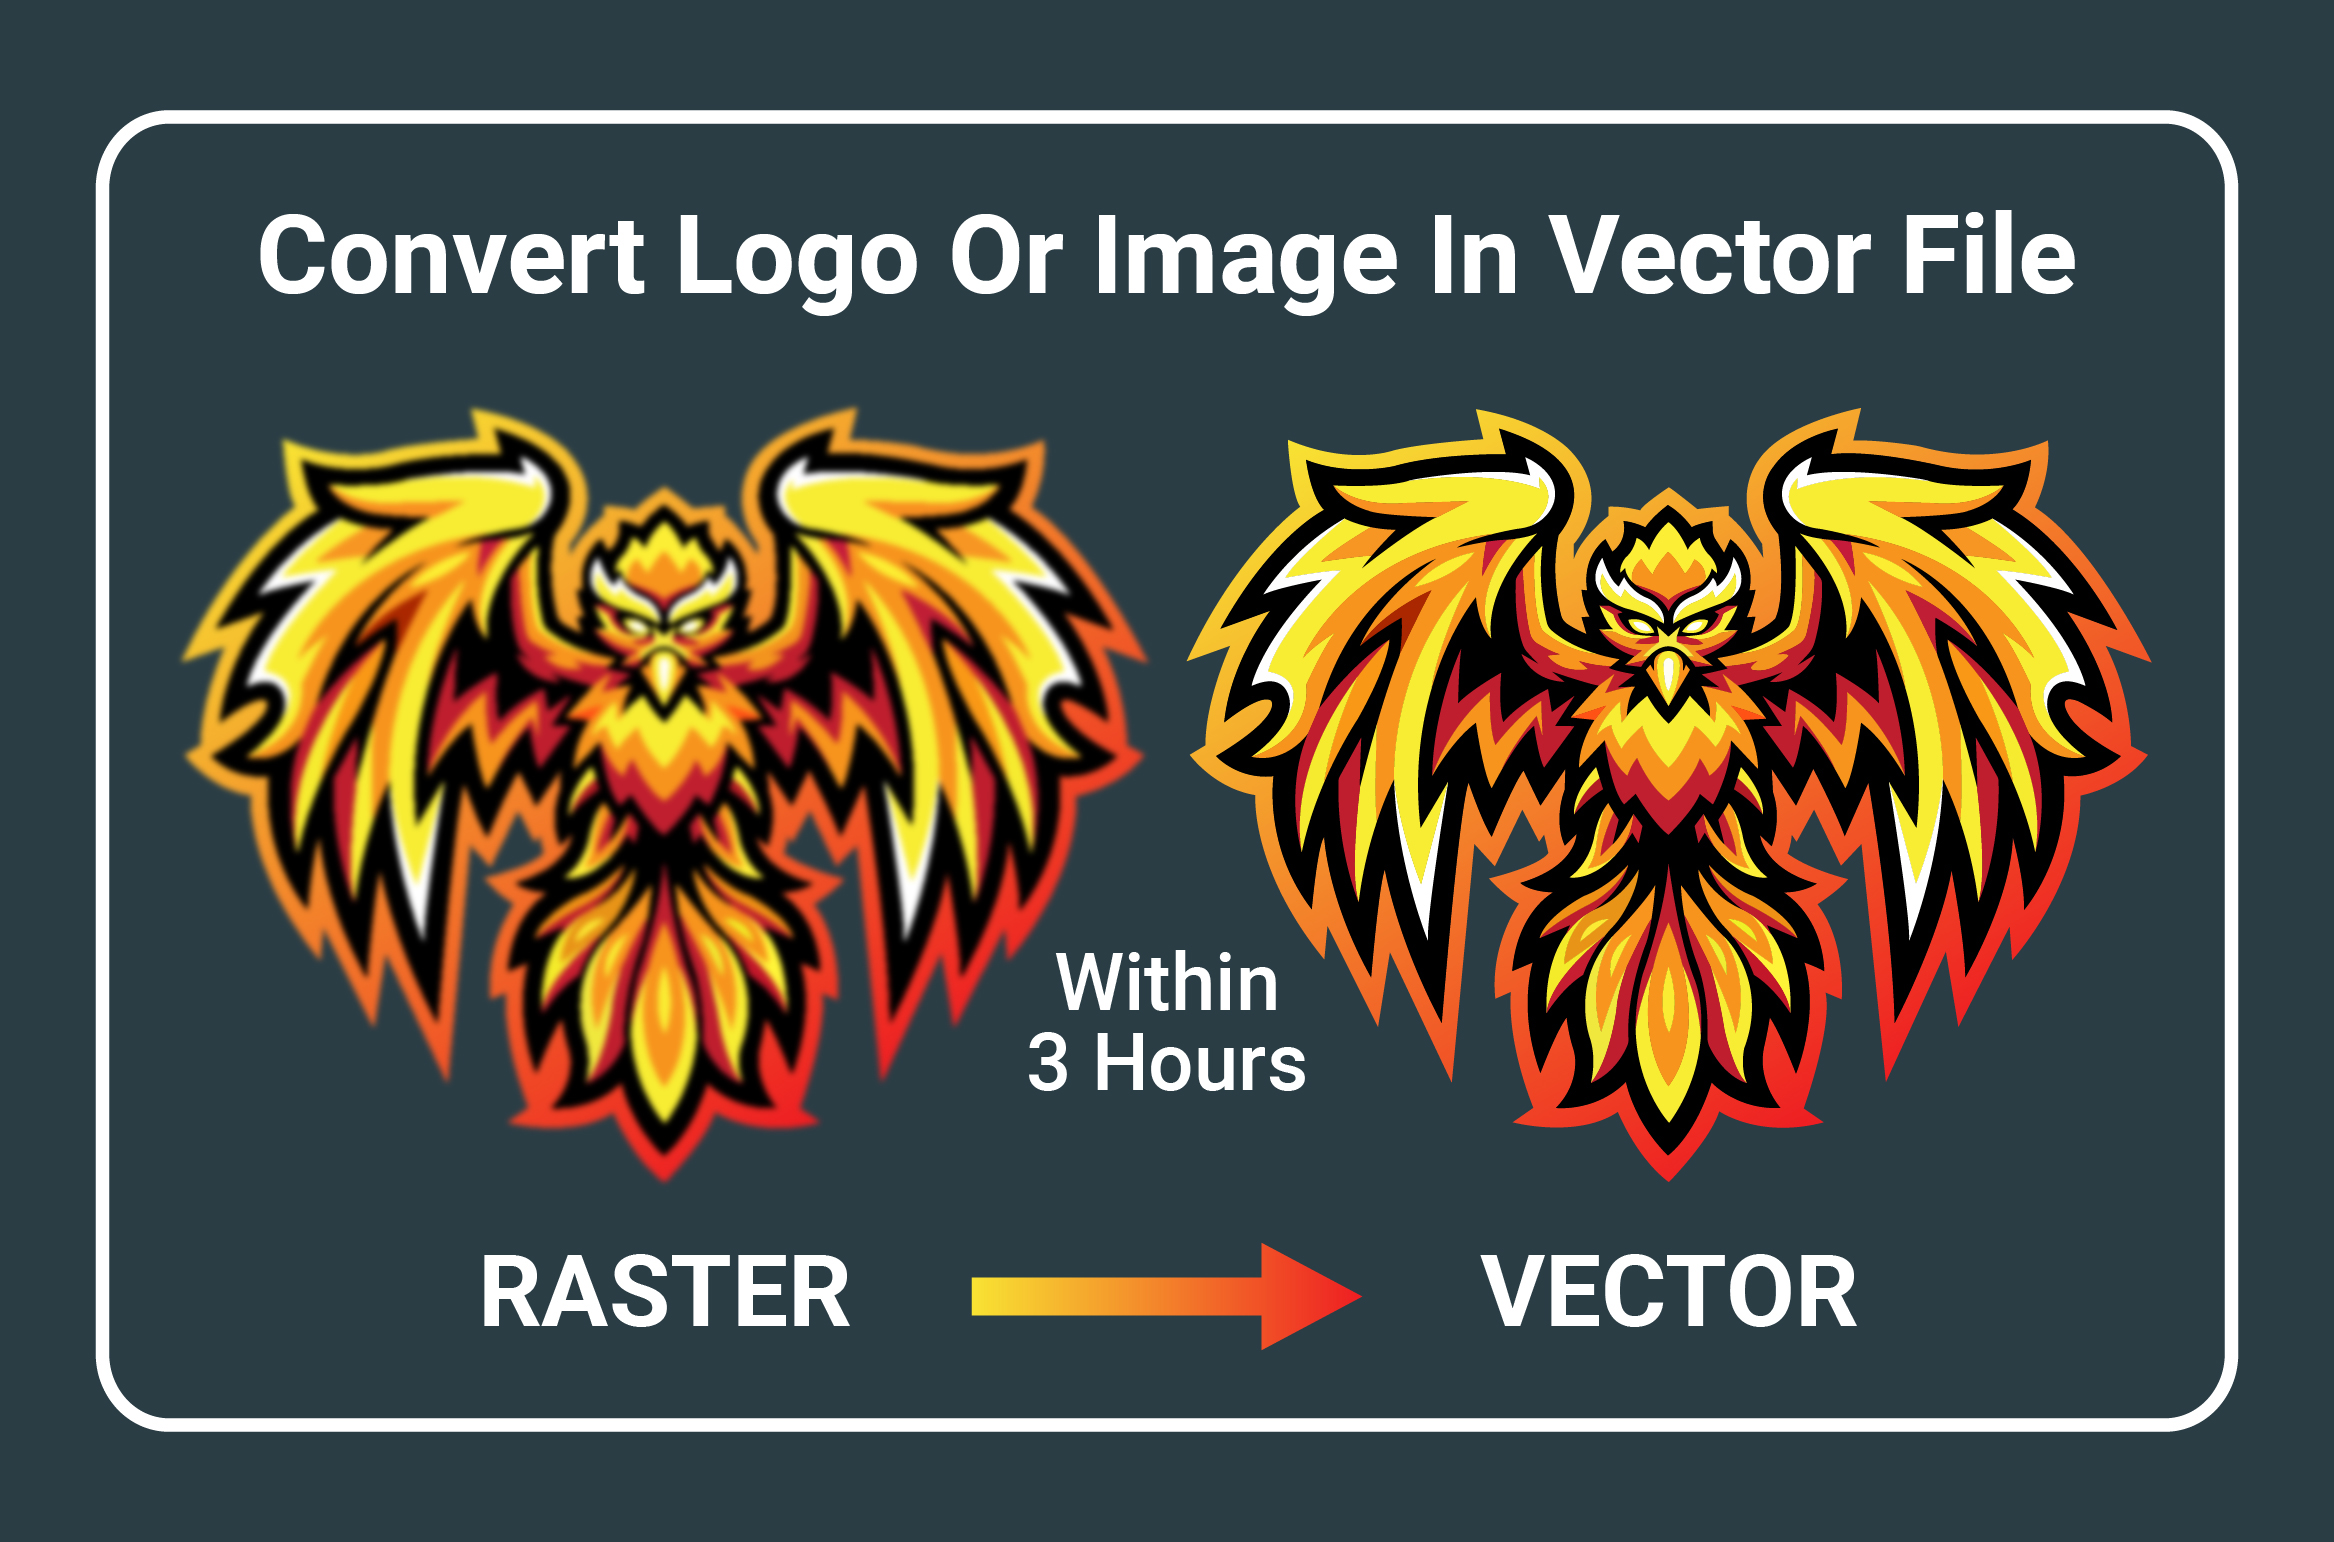 I will recreate logo or image to vector within 3 hours, FiverrBox